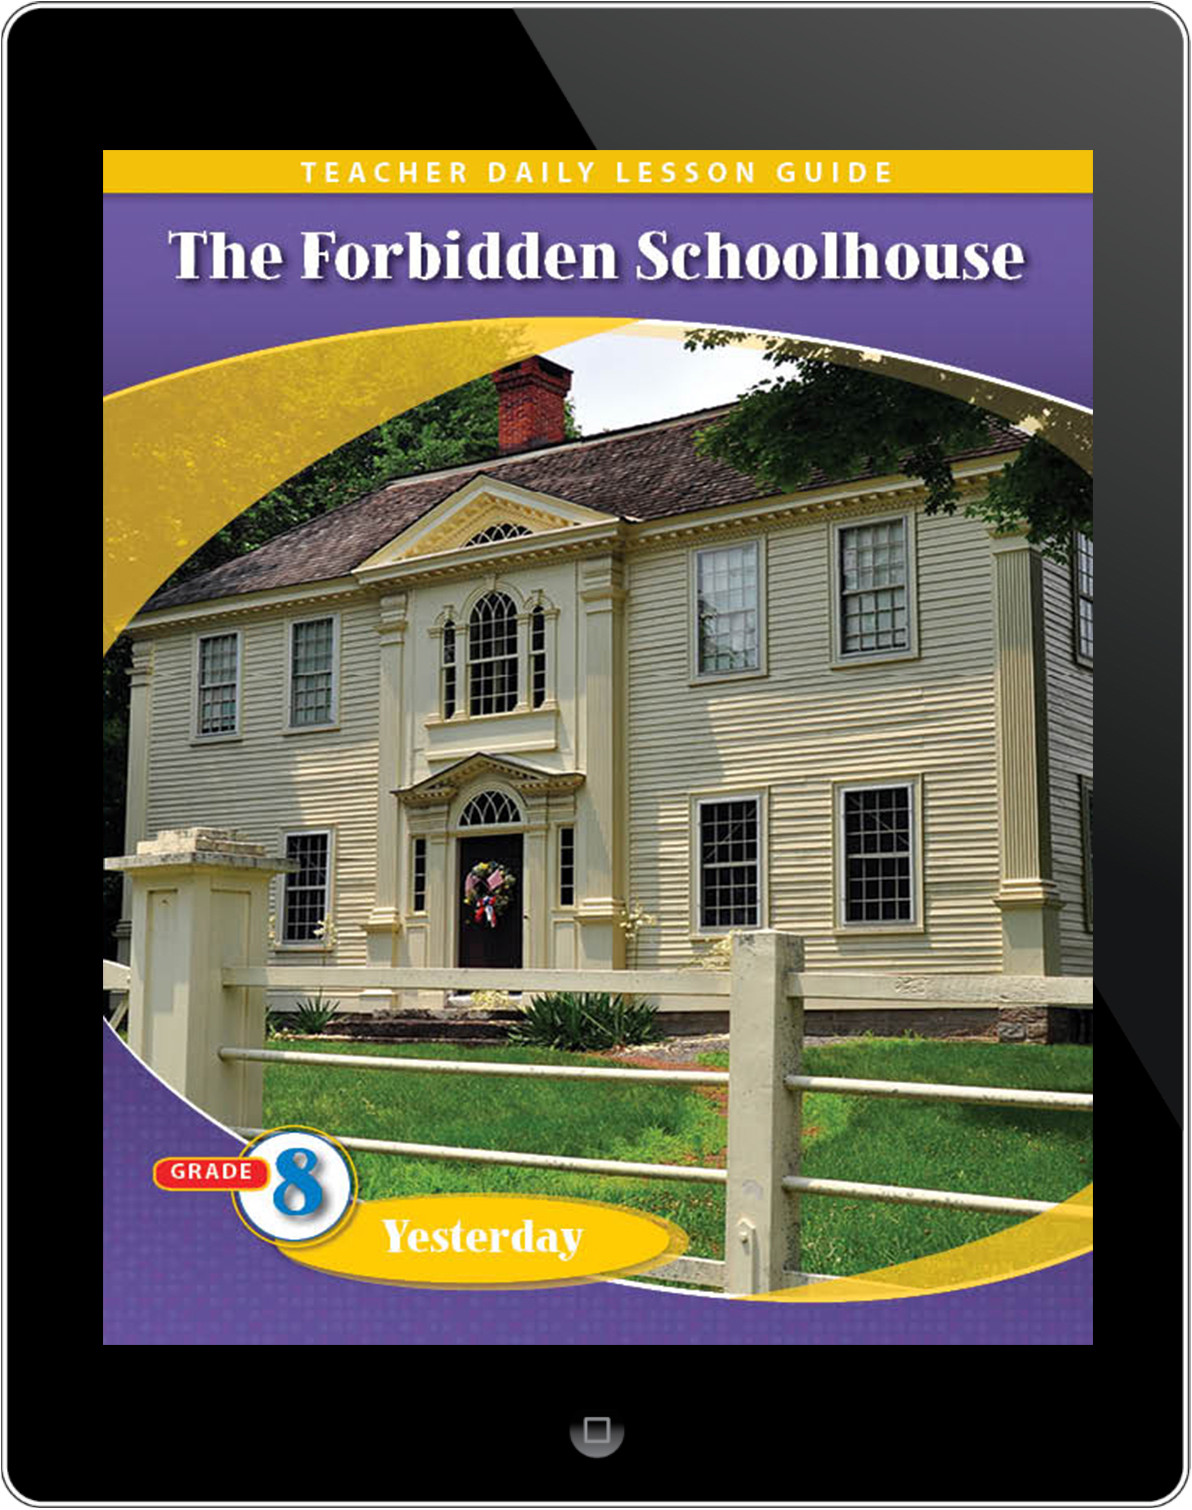 Pathways2.0 Grade 8 Yesterday Unit: The Forbidden School House: The True and Dramatic Story of Prudence Crandell and Her Students Daily Lesson Guide 5 Year License